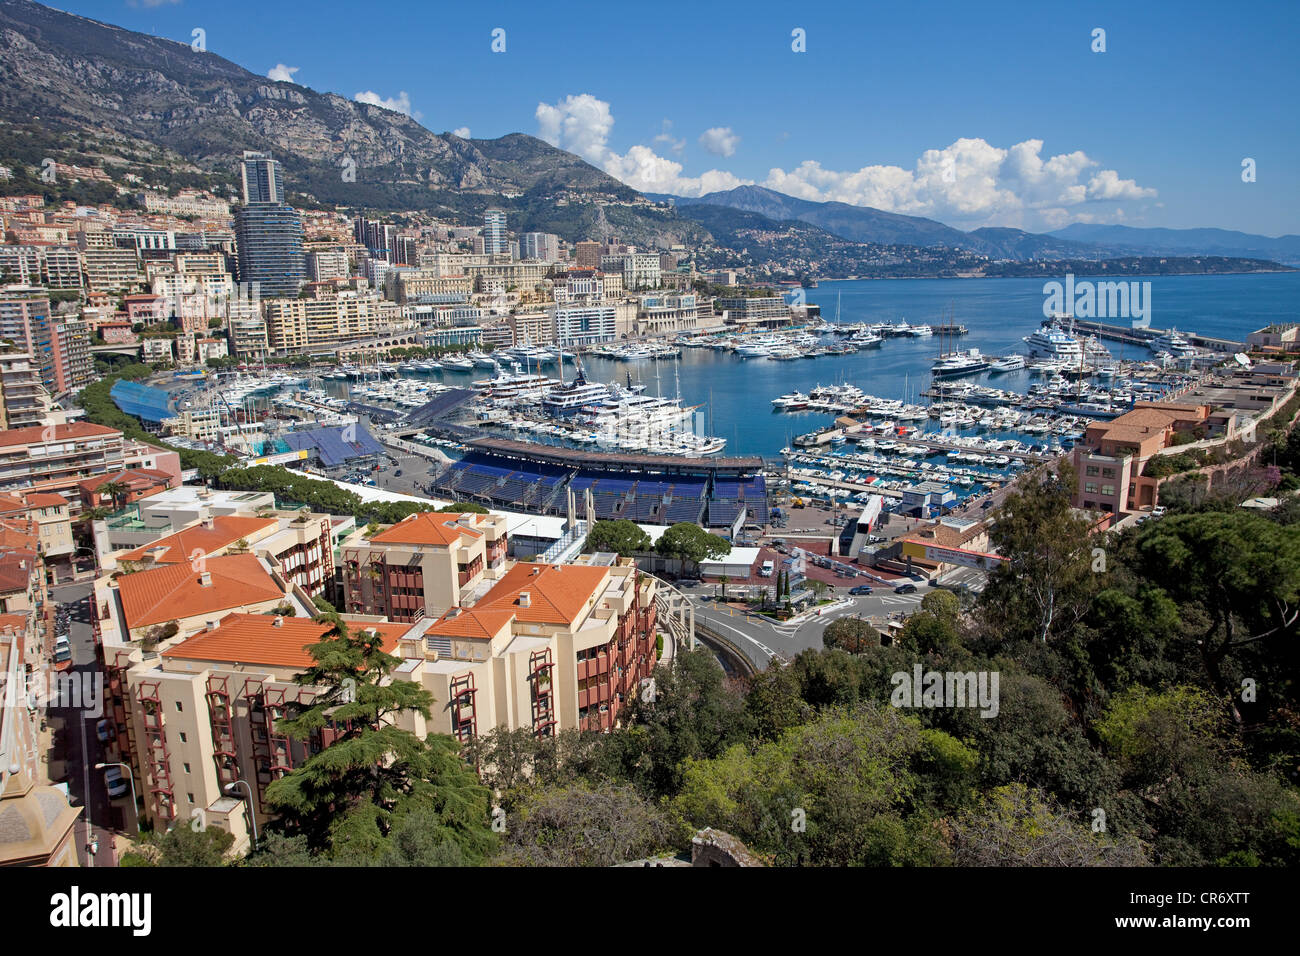 City and harbour of Monaco, Europa - Stock Image